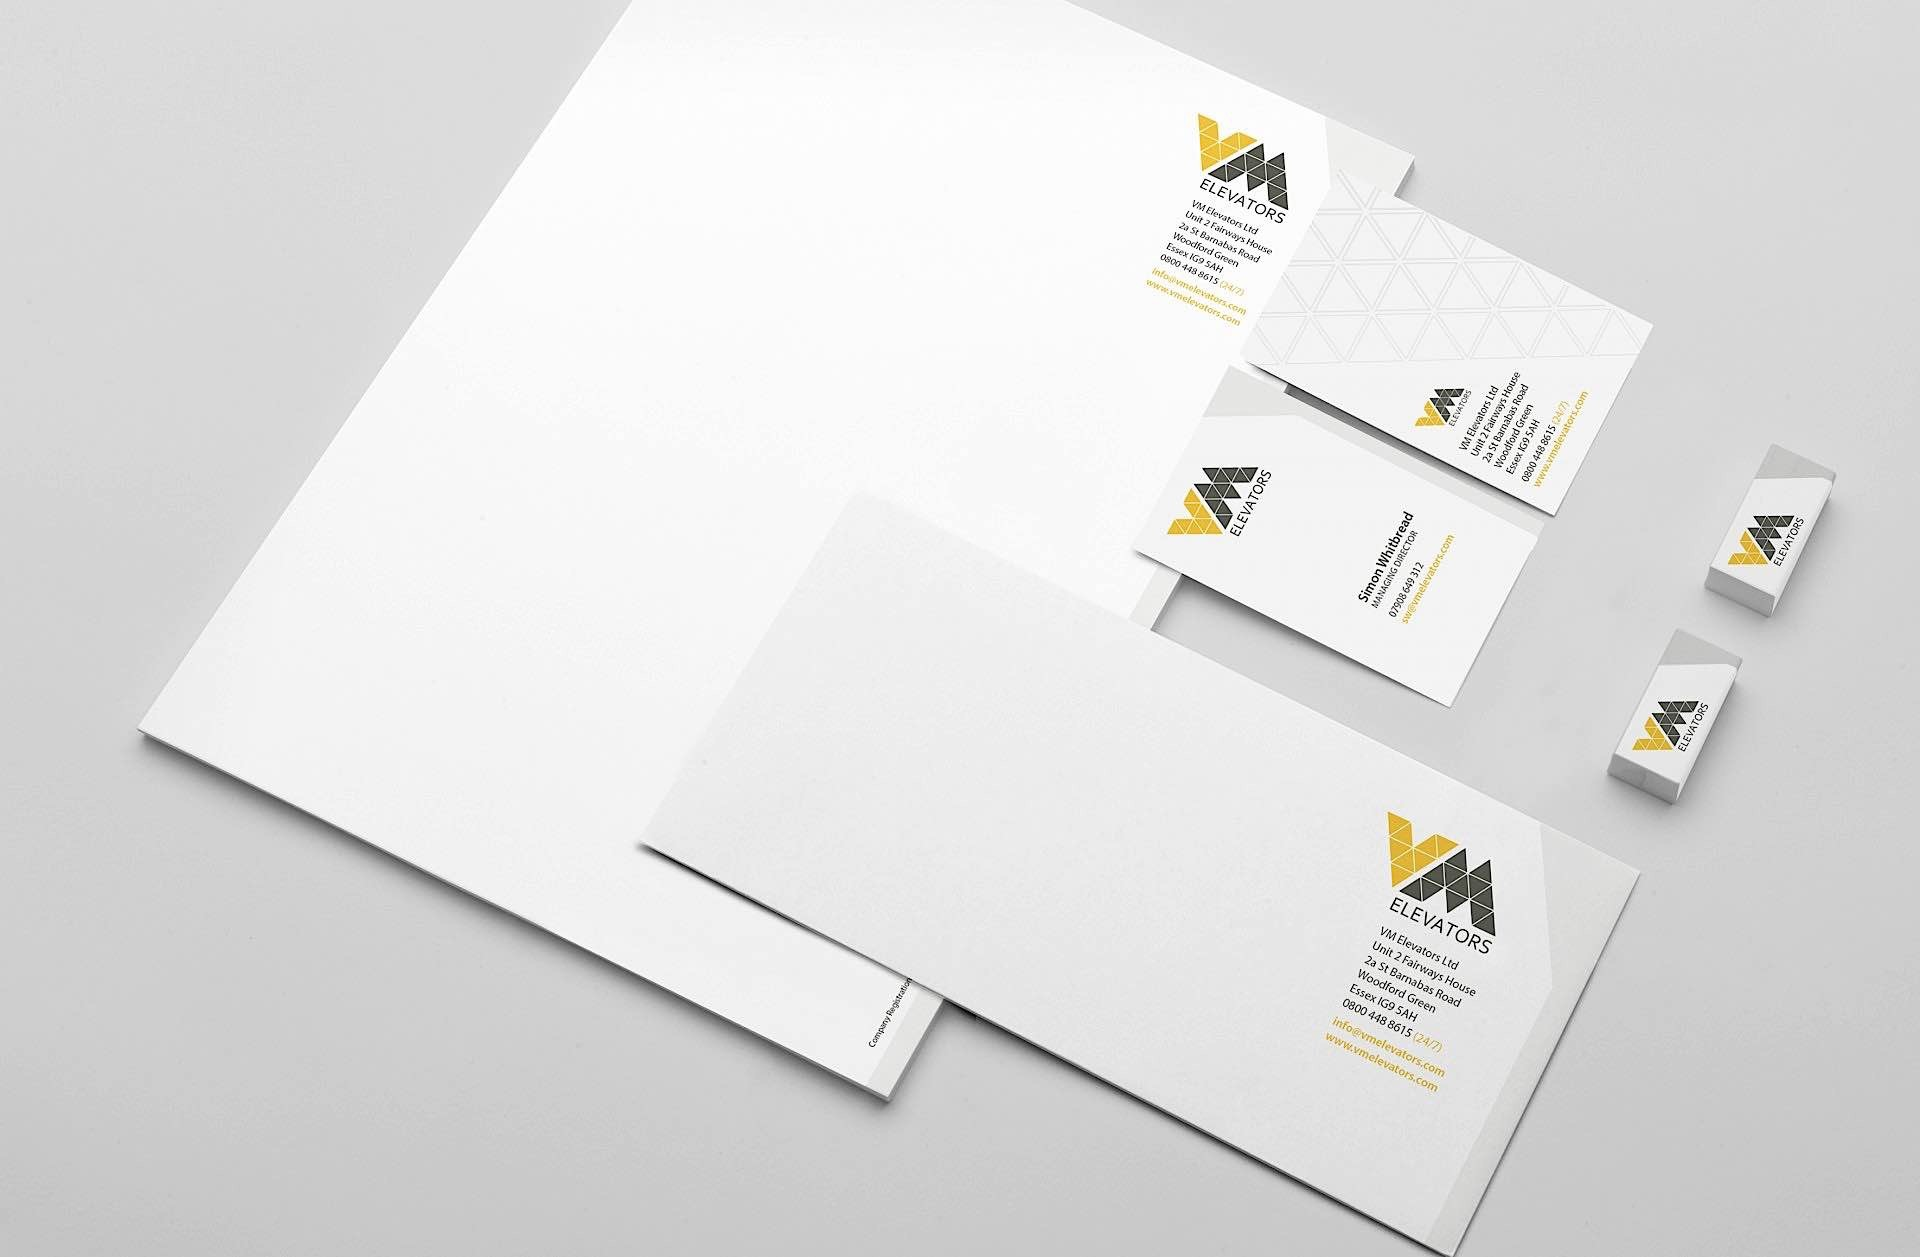 VM-Elevators-Stationery-Branding-1920×1257